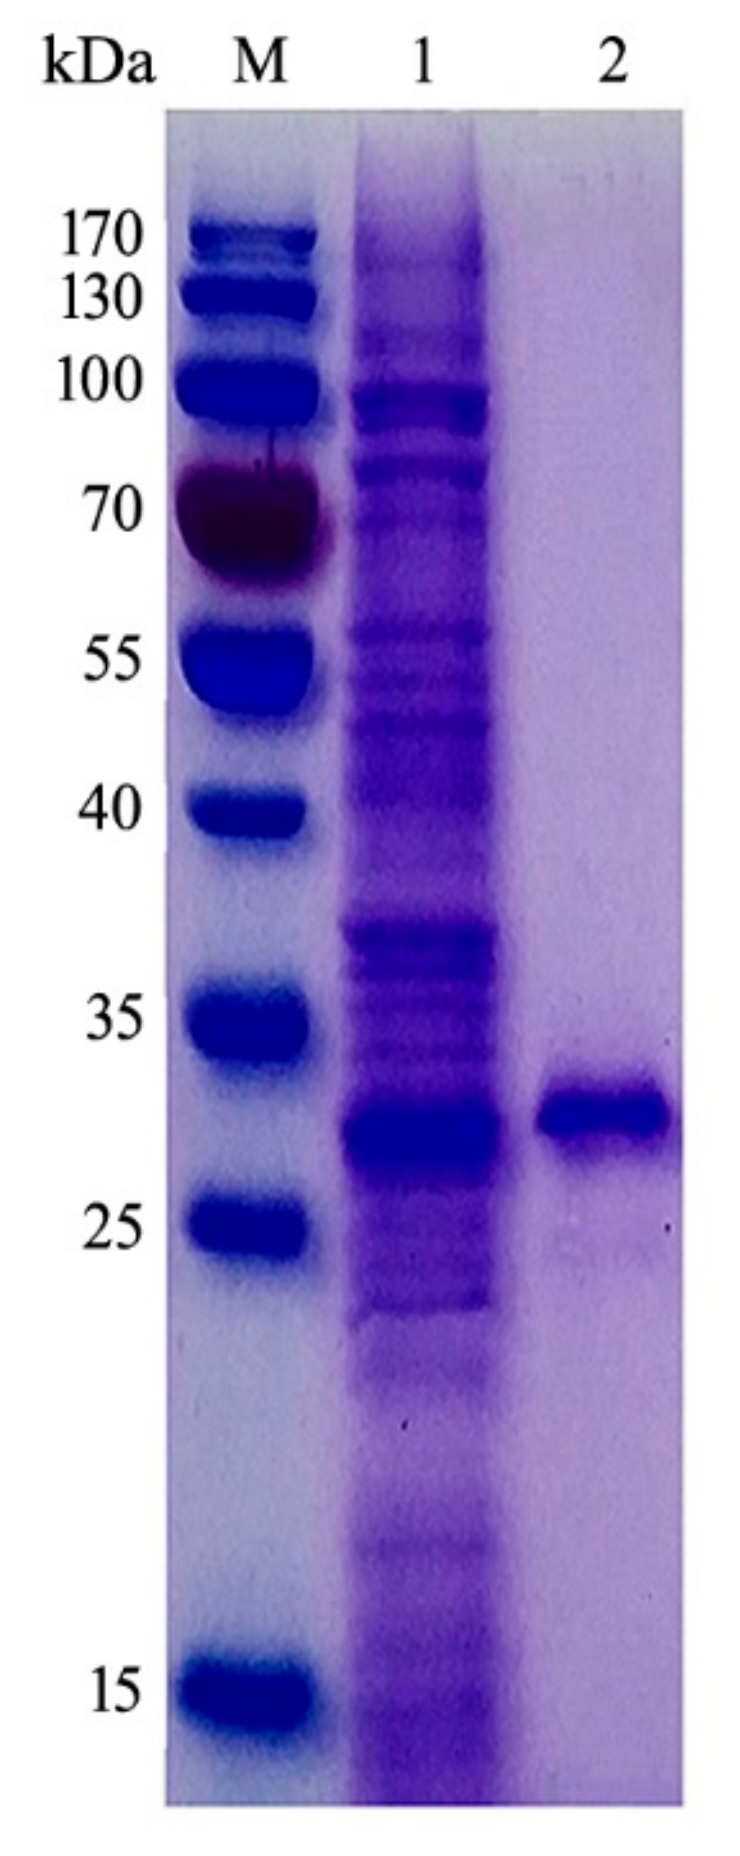 Dodecyl sulfate-polyacrylamide gel electrophoresis (SDS-PAGE) analysis of purified CsnB. M, molecular marker; 1, crude enzymes; 2, purified CsnB. The molecular weight of purified CsnB (theoretical molecular: 30.89 kDa) after Ni-NTA sepharose column was measured to be about 30 kDa by SDS-PAGE.